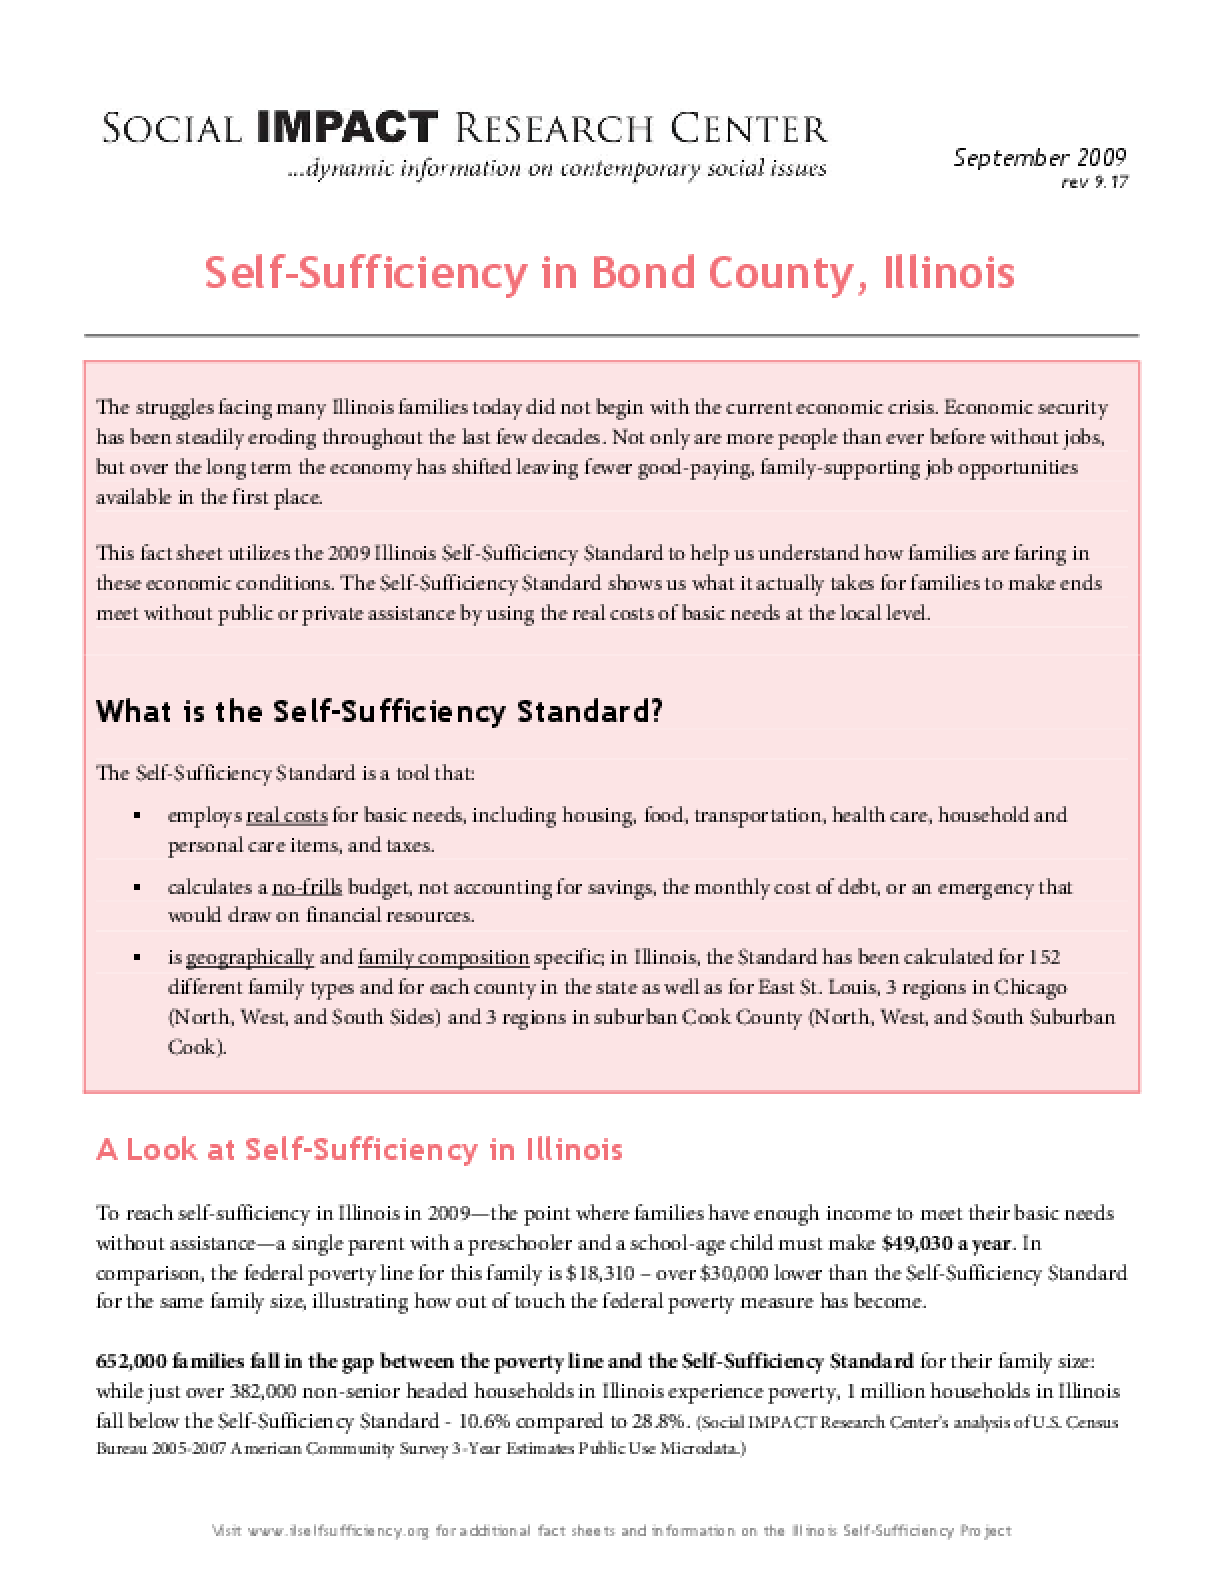 Self-Sufficiency in Bond County, Illinois